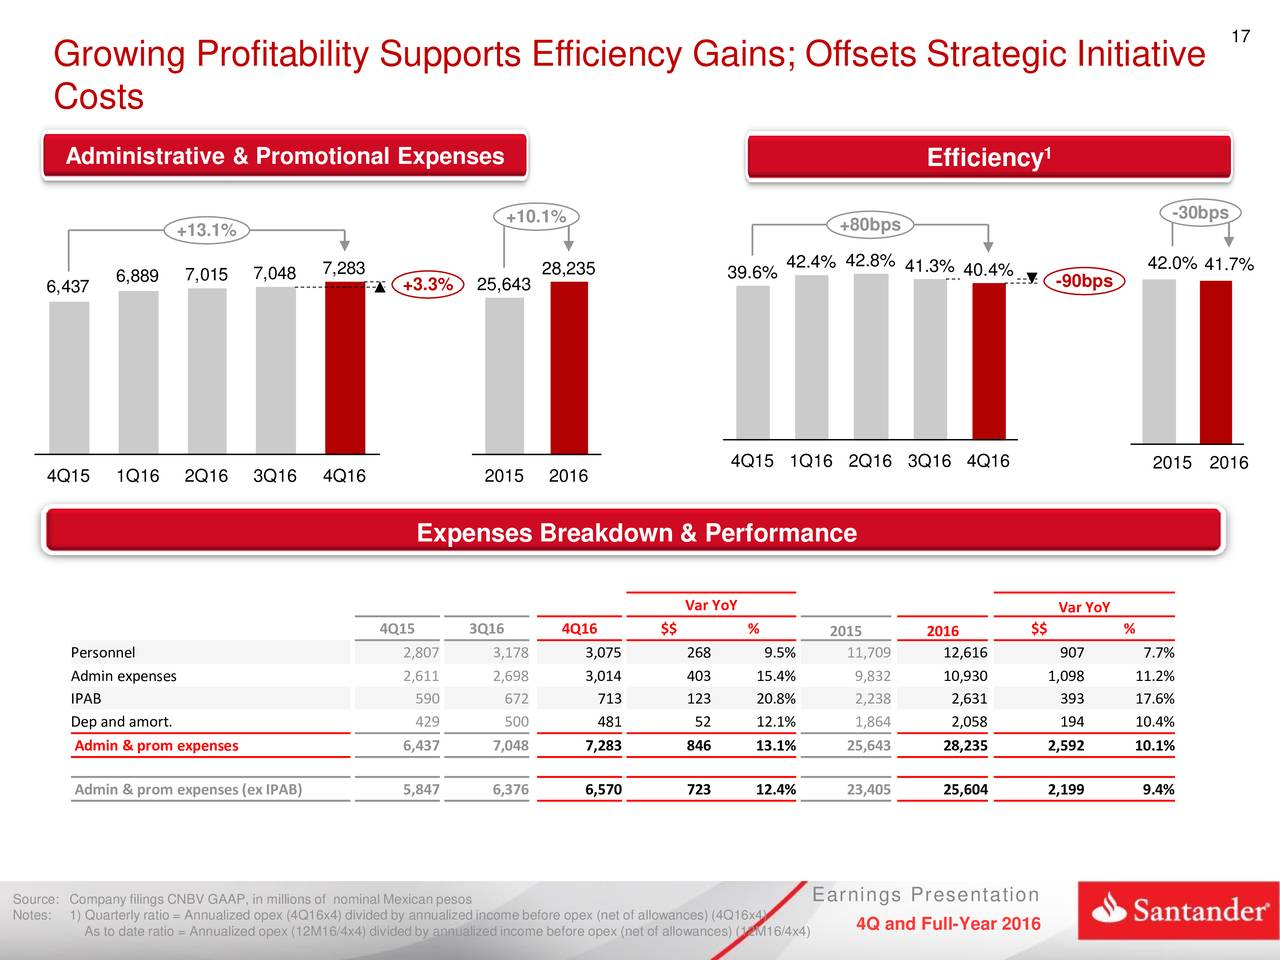 grupo santander a strategic analysis View miguel del río florentino's profile associate in strategic planning grupo santander • credit risk analysis and admission of transactions.